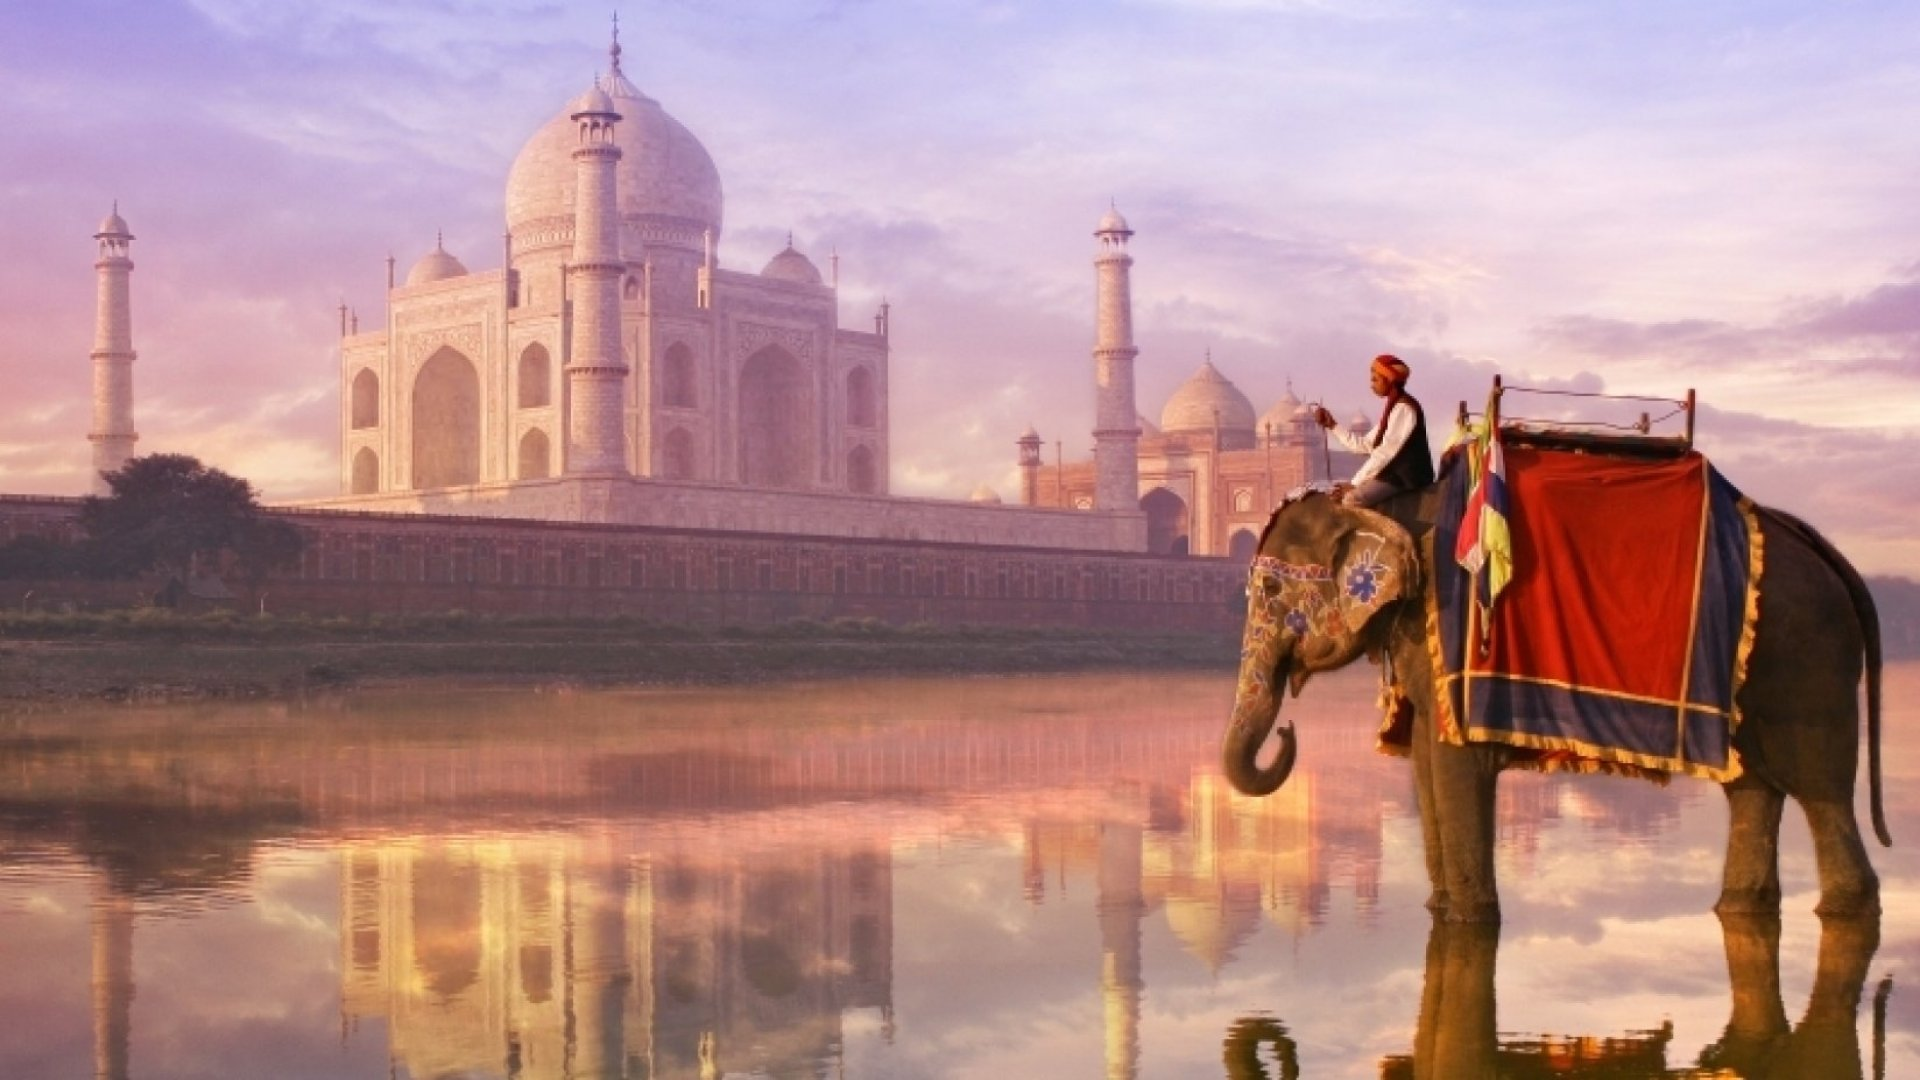 The Single Best Piece of Travel Advice I've Ever Had Came From a Trip to India